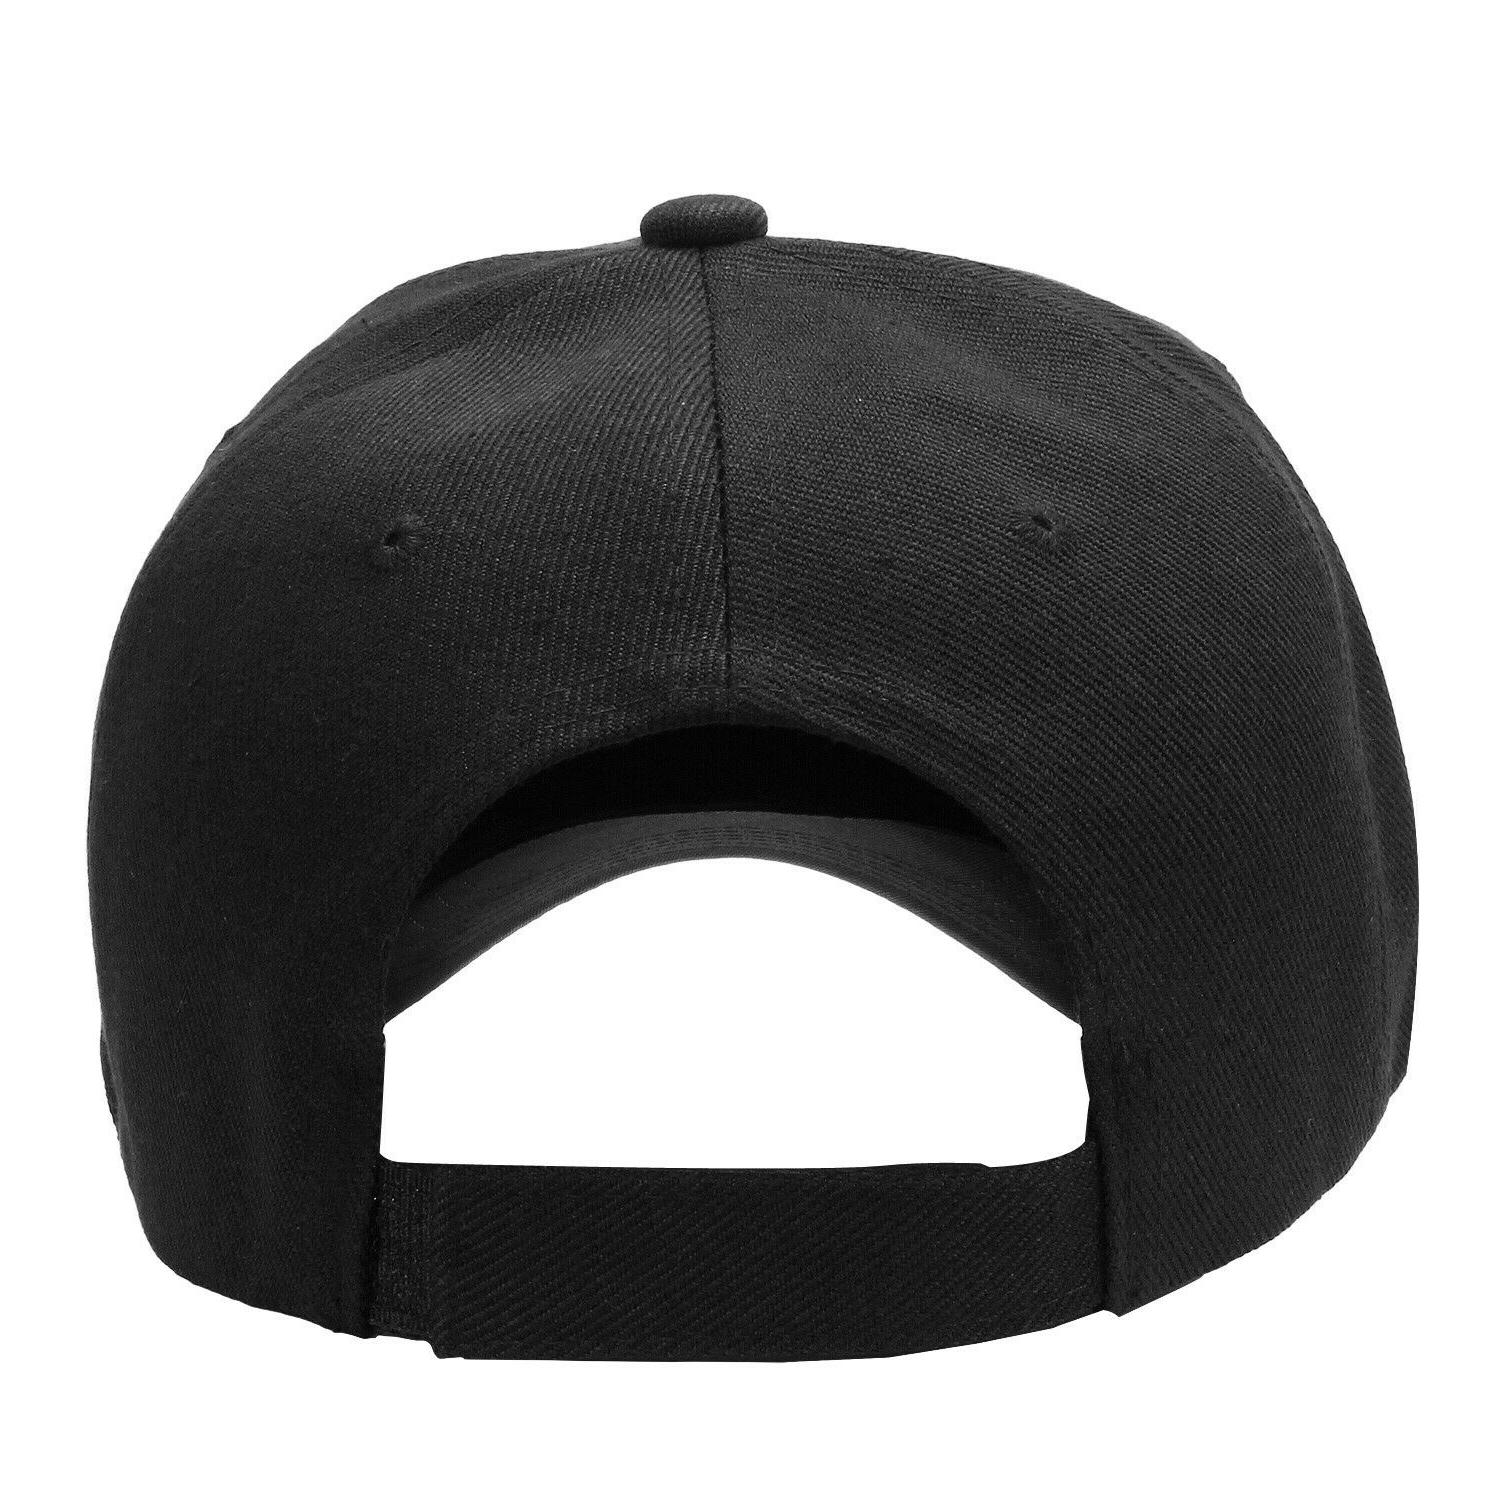 2-pack Cap Hat Size Solid